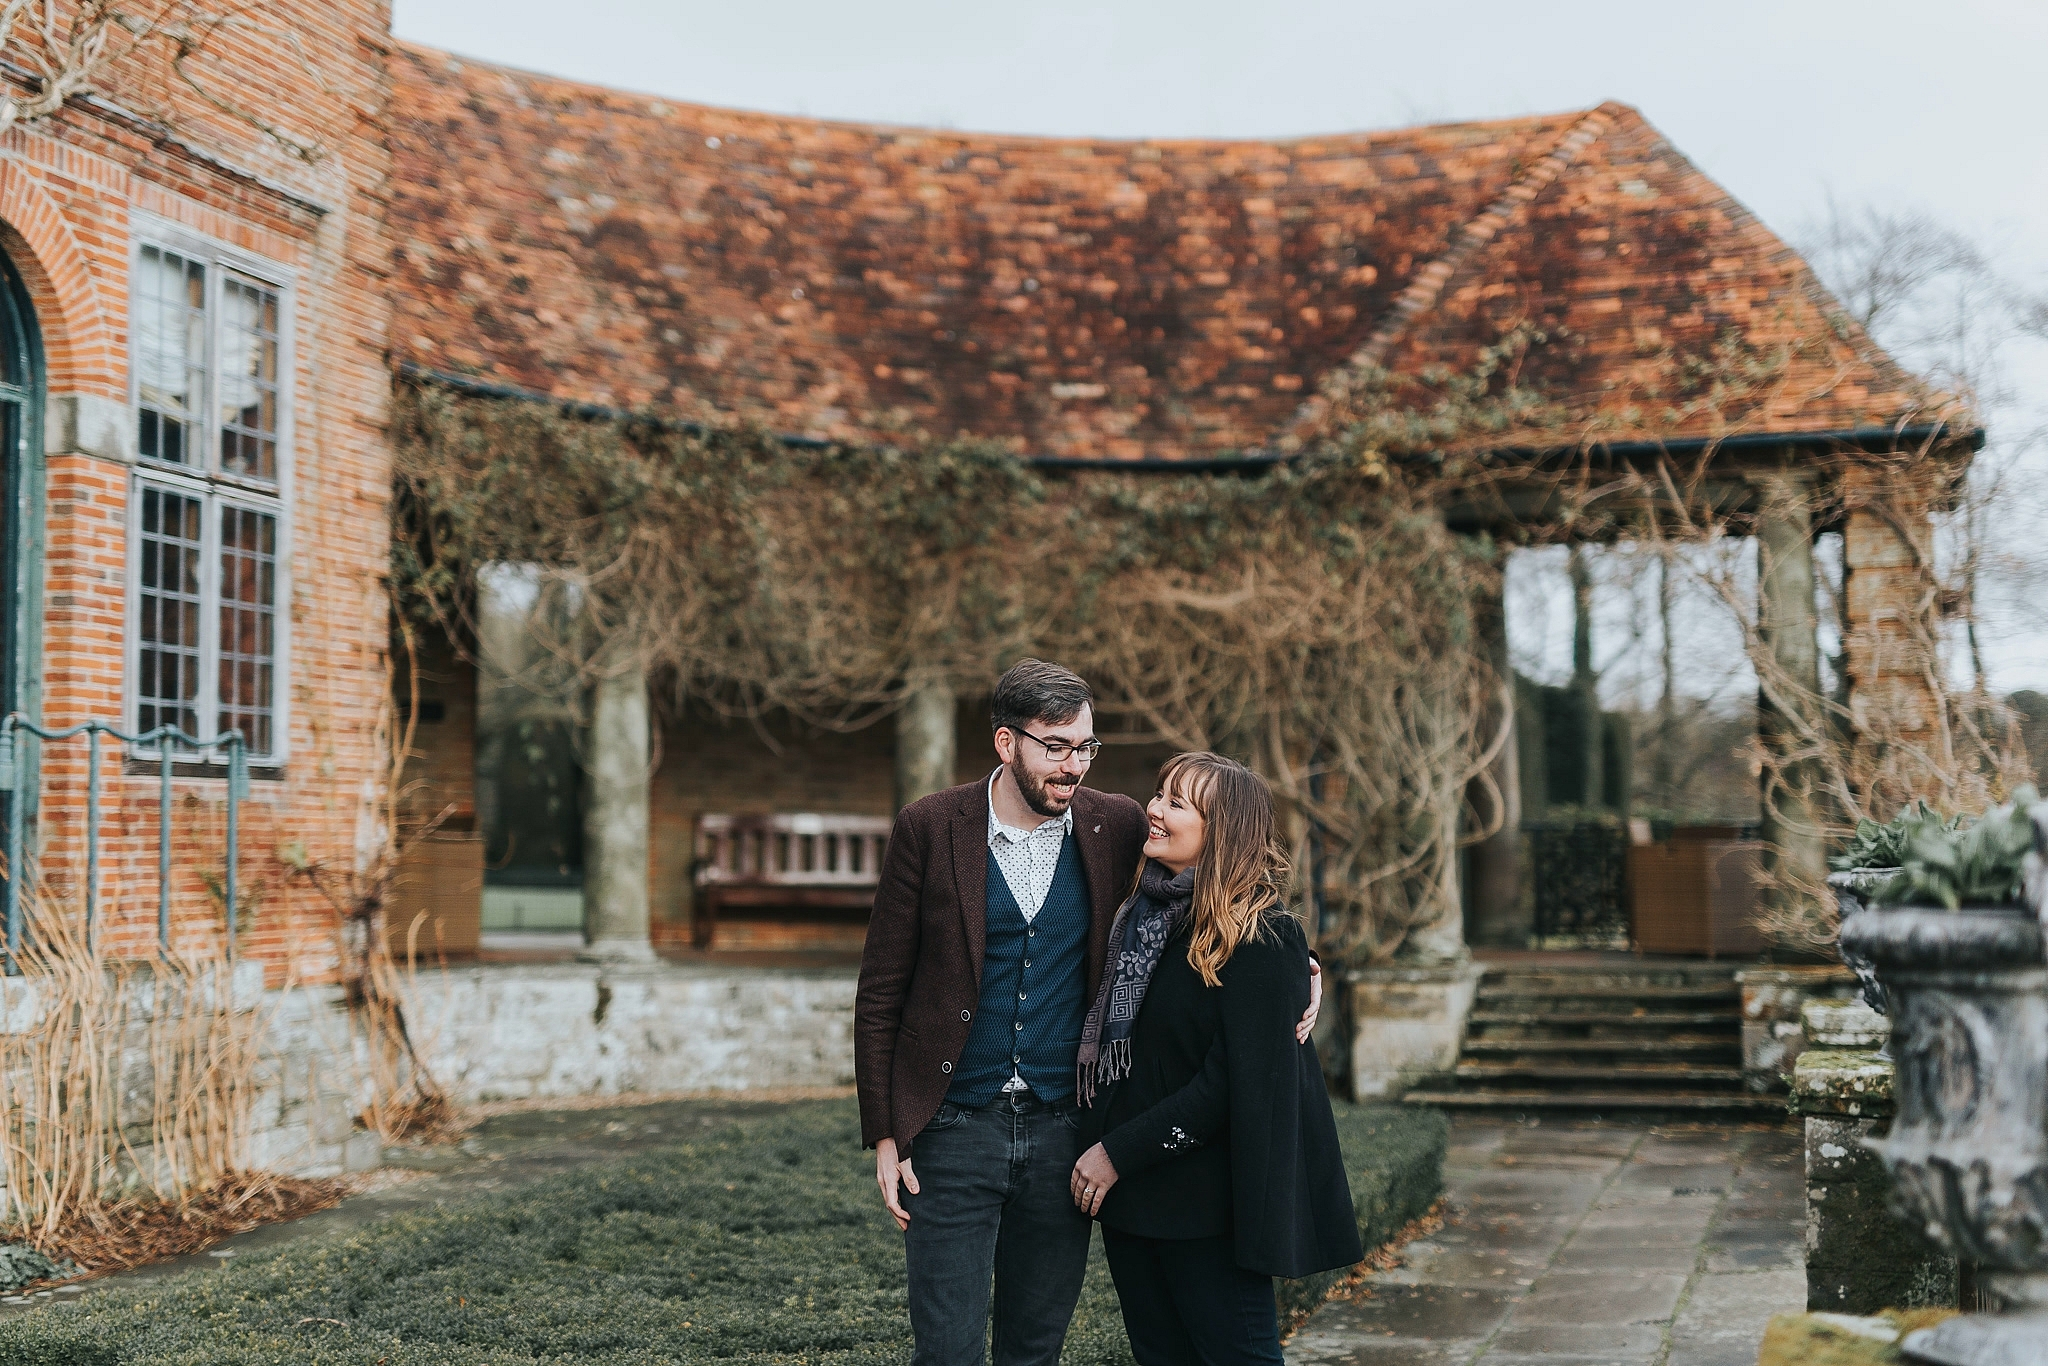 Port Lympne Photography engagement photographer kent Emily Crutcher 10